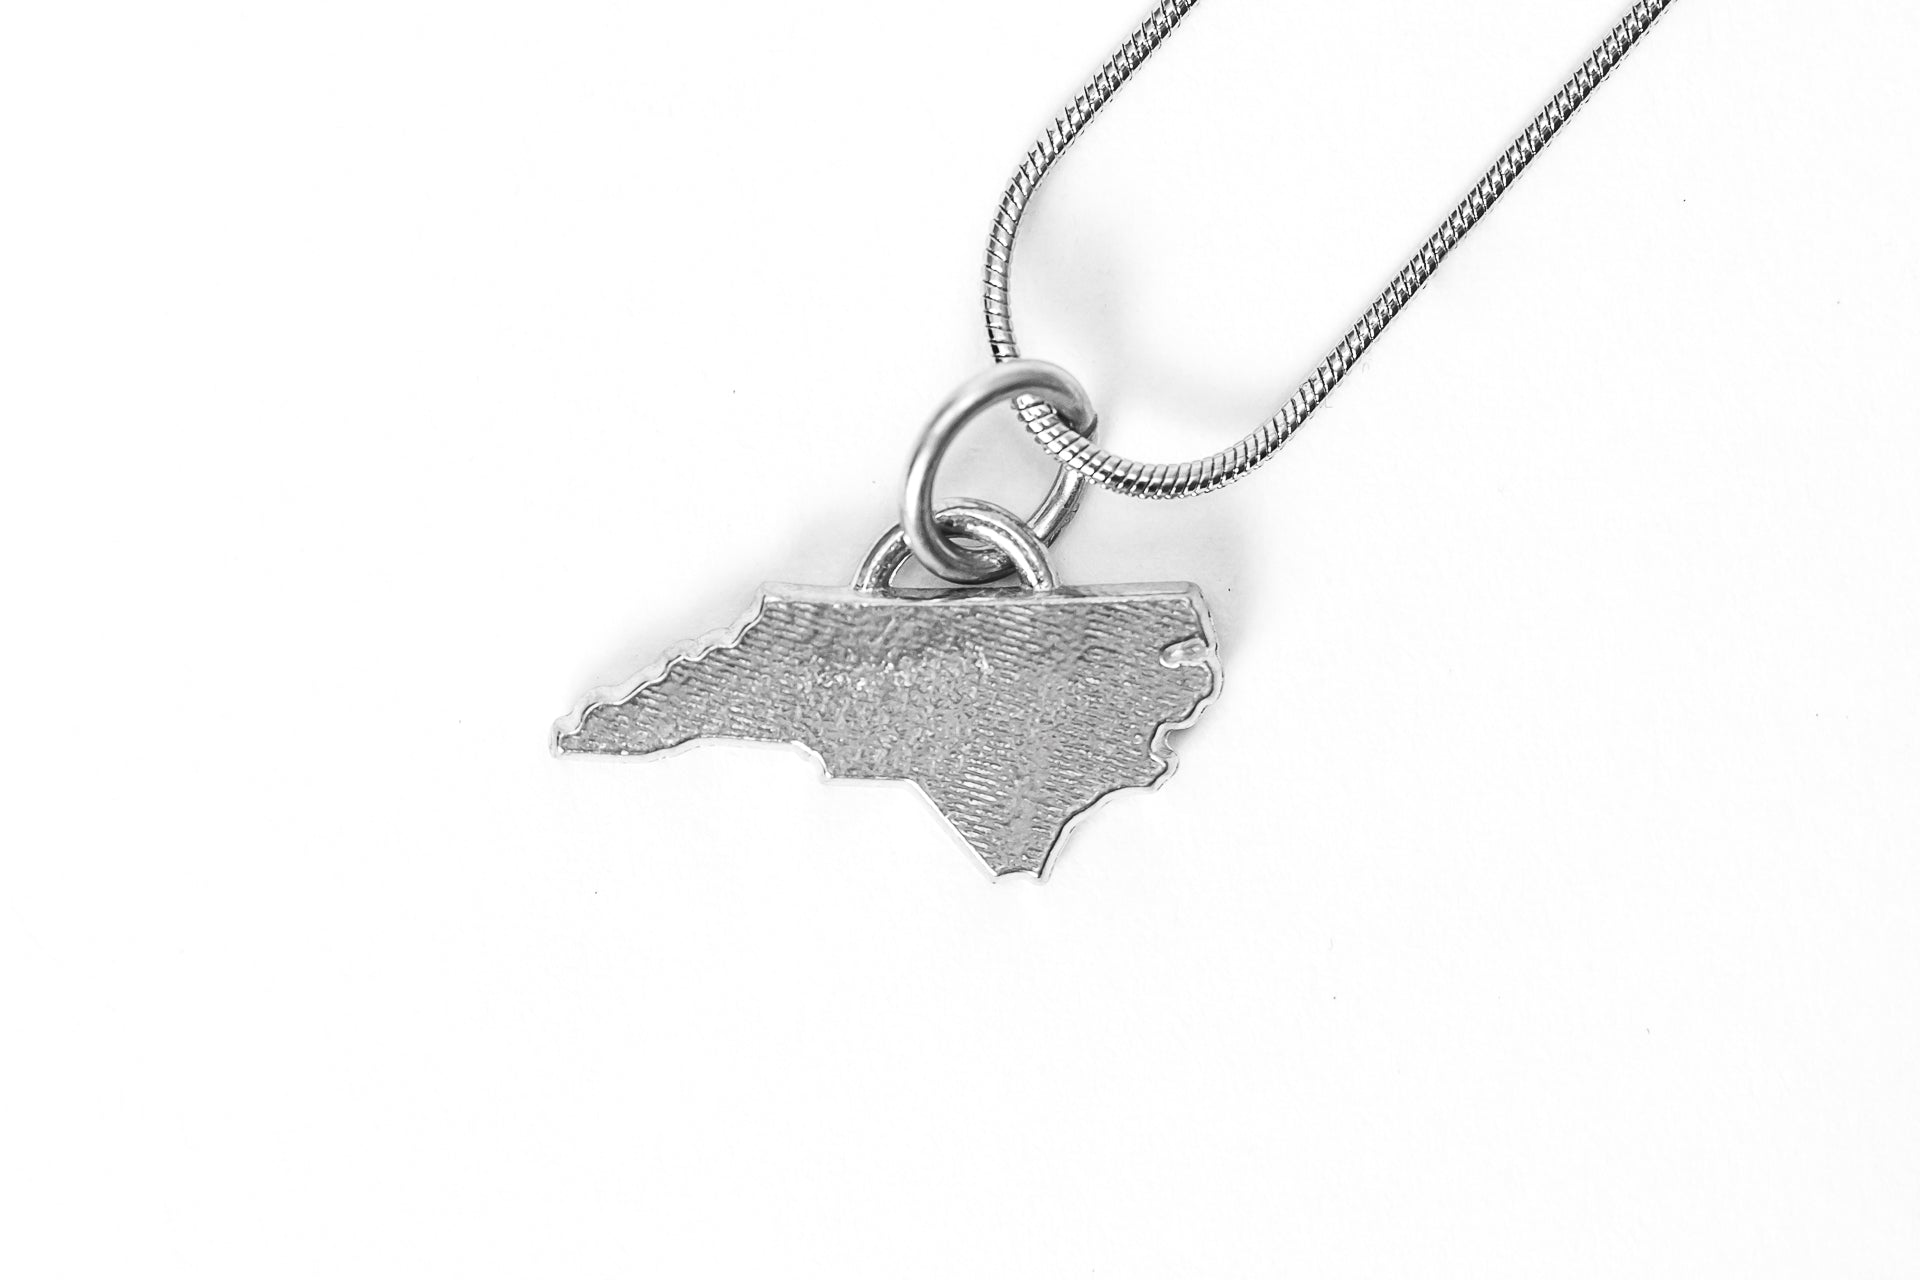 handmade nc pendant adjustable necklace